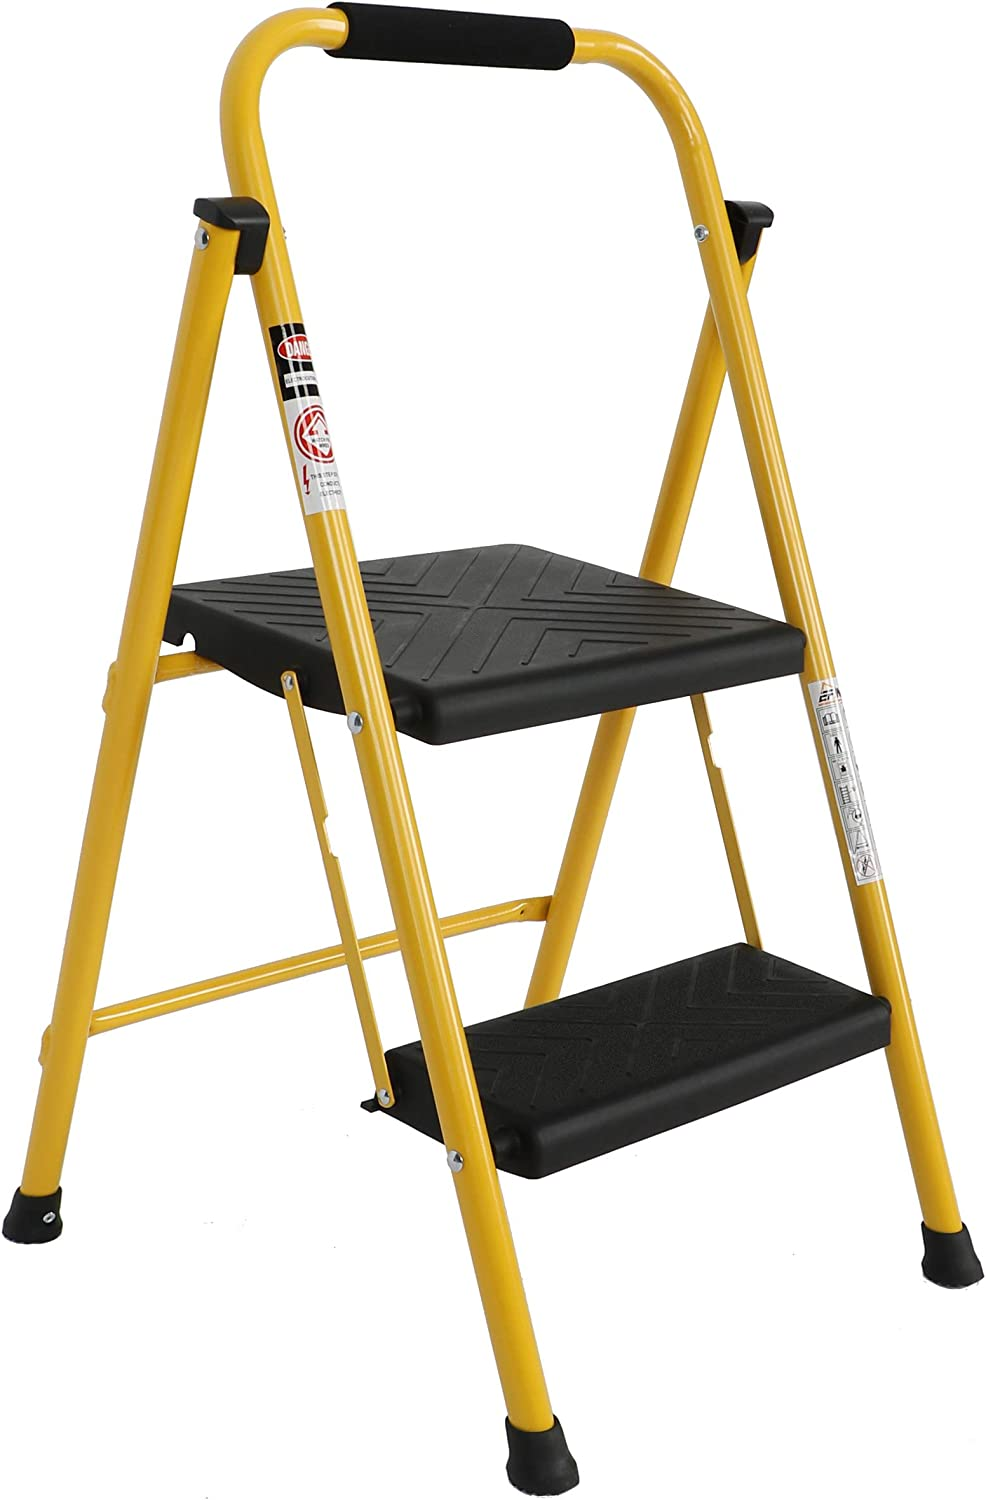 EFINE 2 Step Ladder, Oversized Pedal and Position Lock, High Grade Steel with Smooth Powder Coating, Sturdy and Lightwight, Holding up to 500lbs. (Yellow) - -